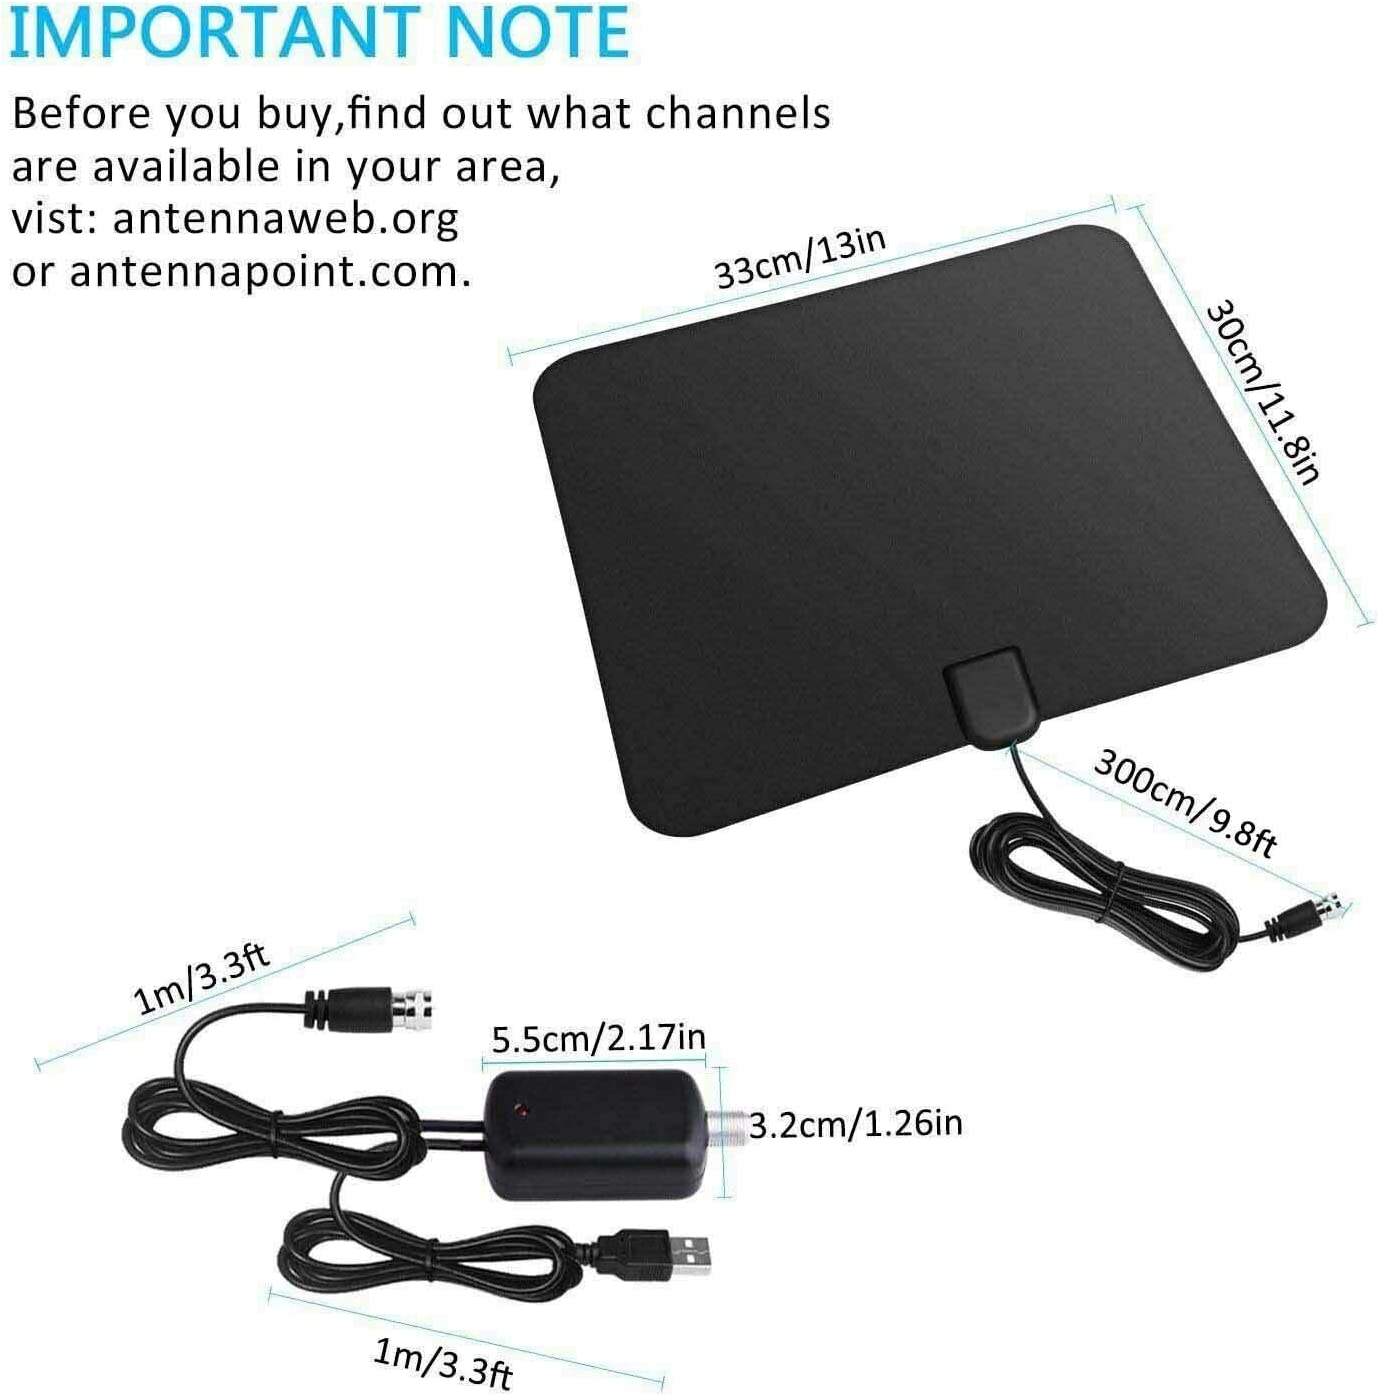 HD TV Signal Black Built-In Amplifier TV Antennas For Digital TV Range Indoor And Outdoor ARB Market 450 Miles 1080P VHF Antenna Digital HD TV Amplified Mile Ultra Thin Range Gain Booster